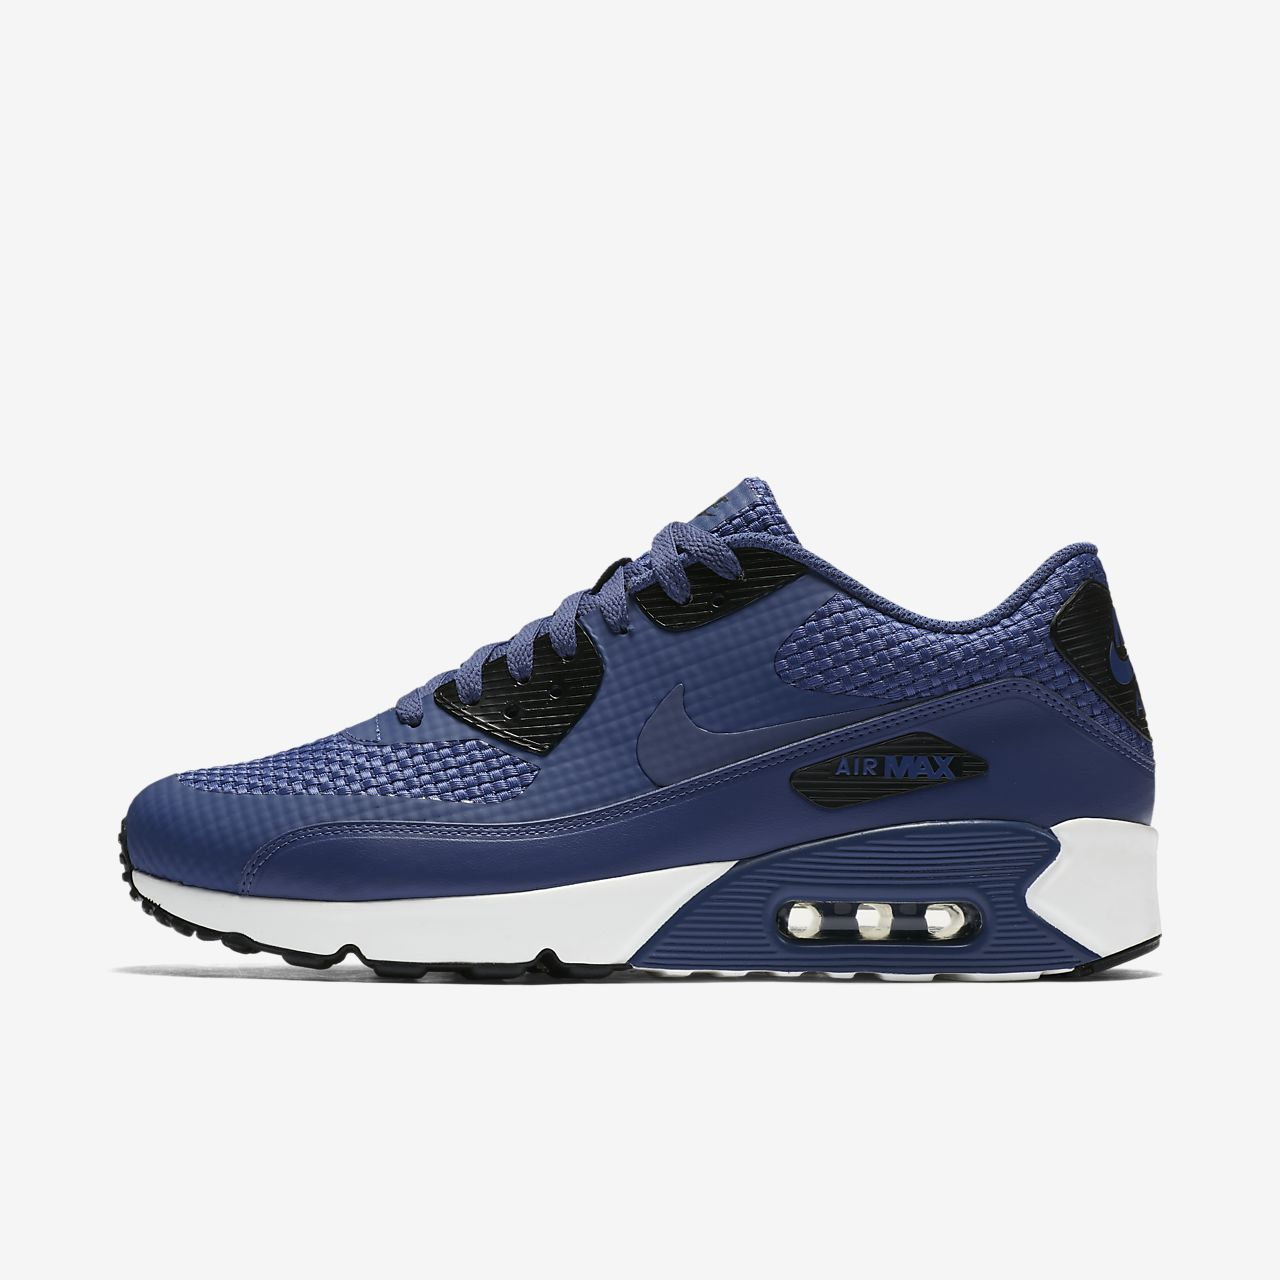 Nike Air Max 90 Ultra 2.0 SE Men's Shoe